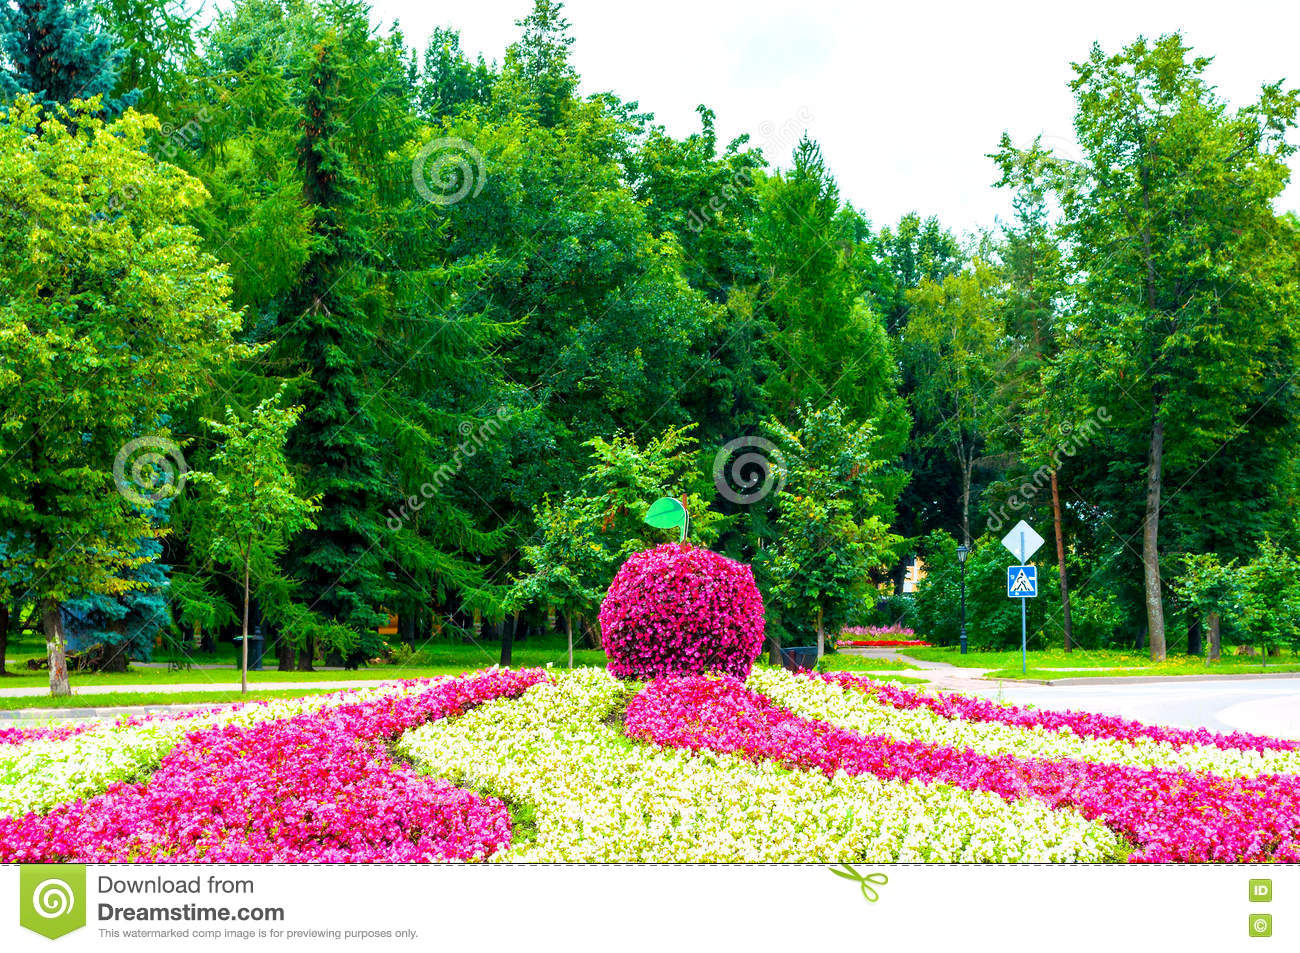 Summer Landscaping summer street landscaping - flowerbed with landscaping element in